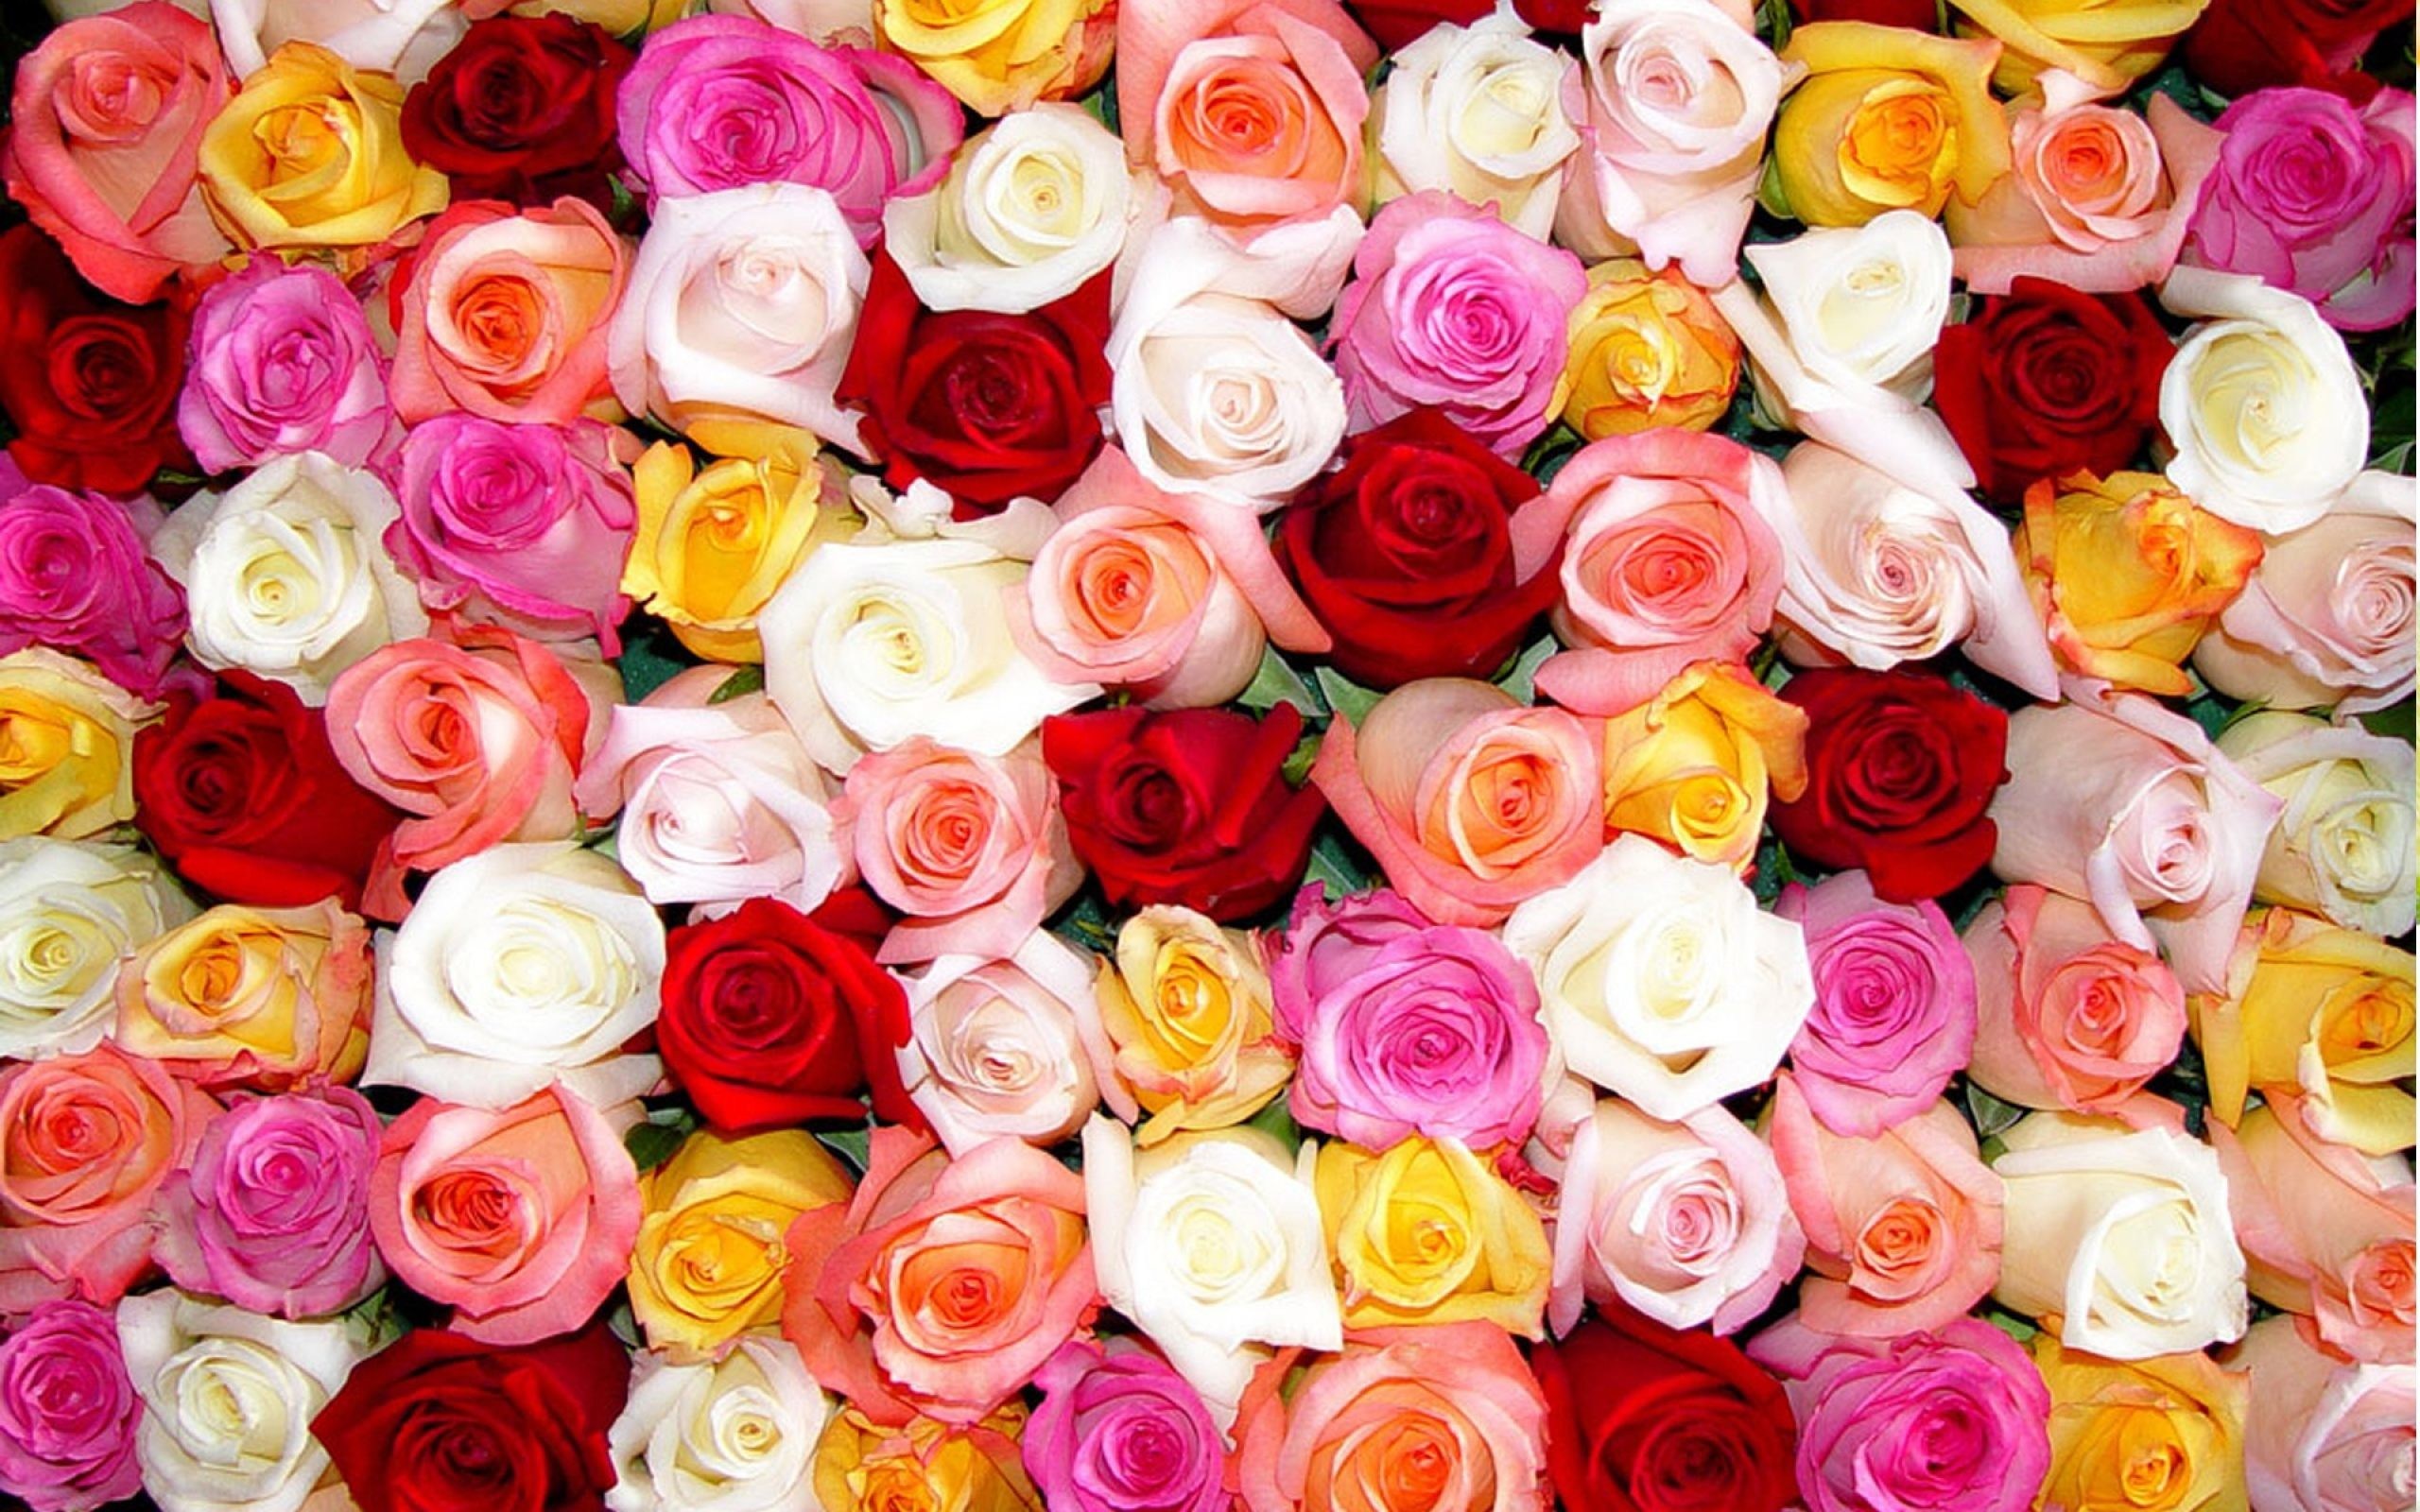 Rose, Flowers and Beautiful flowers